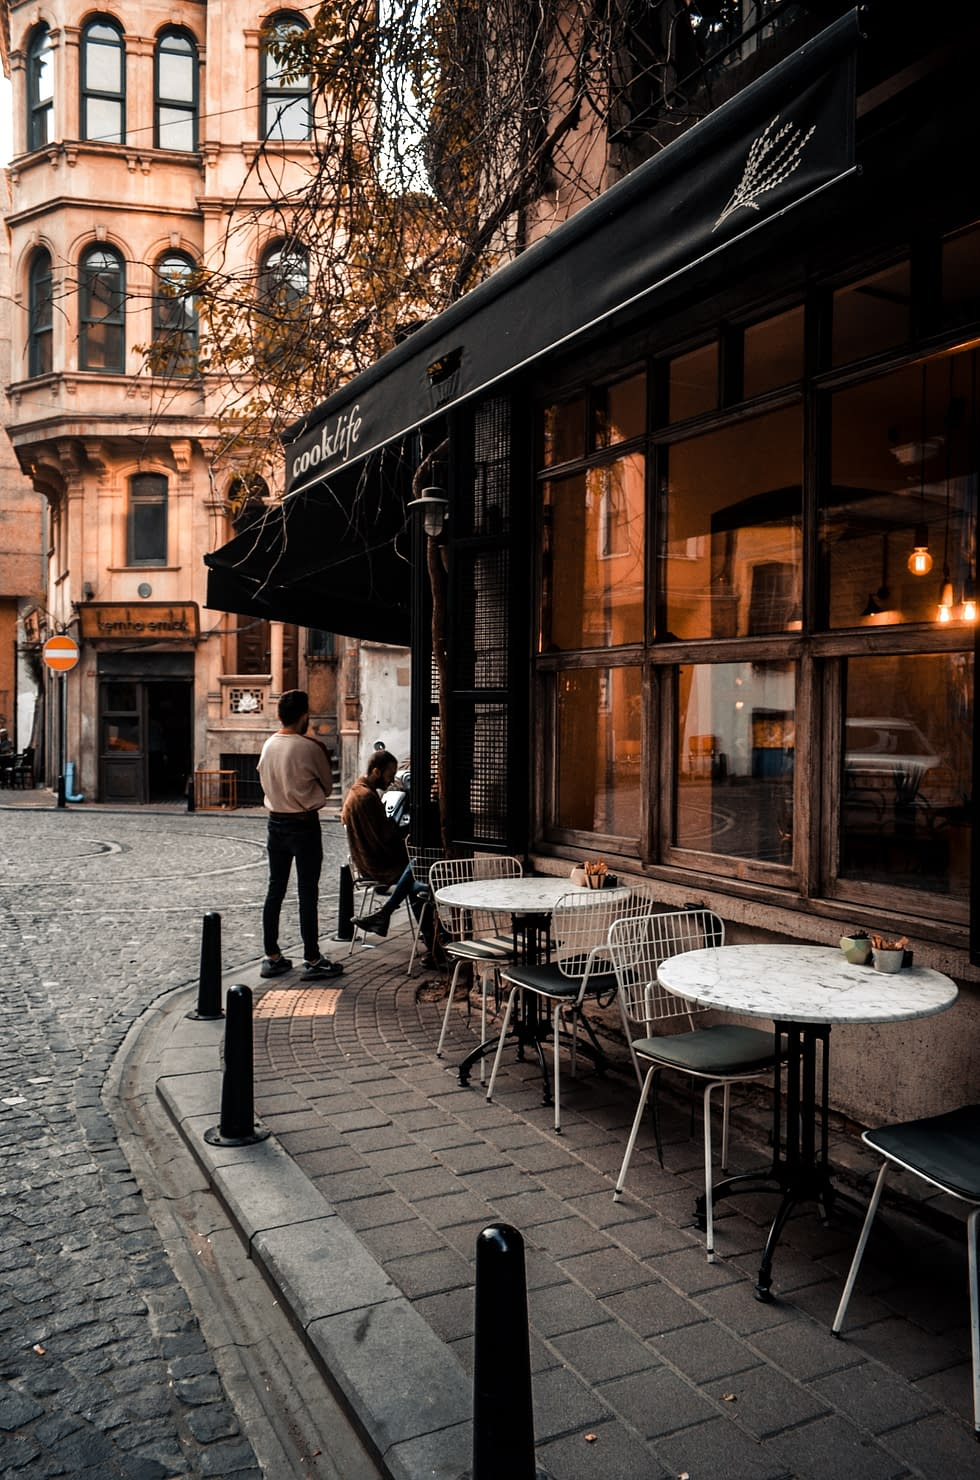 a cafe outside next to the street